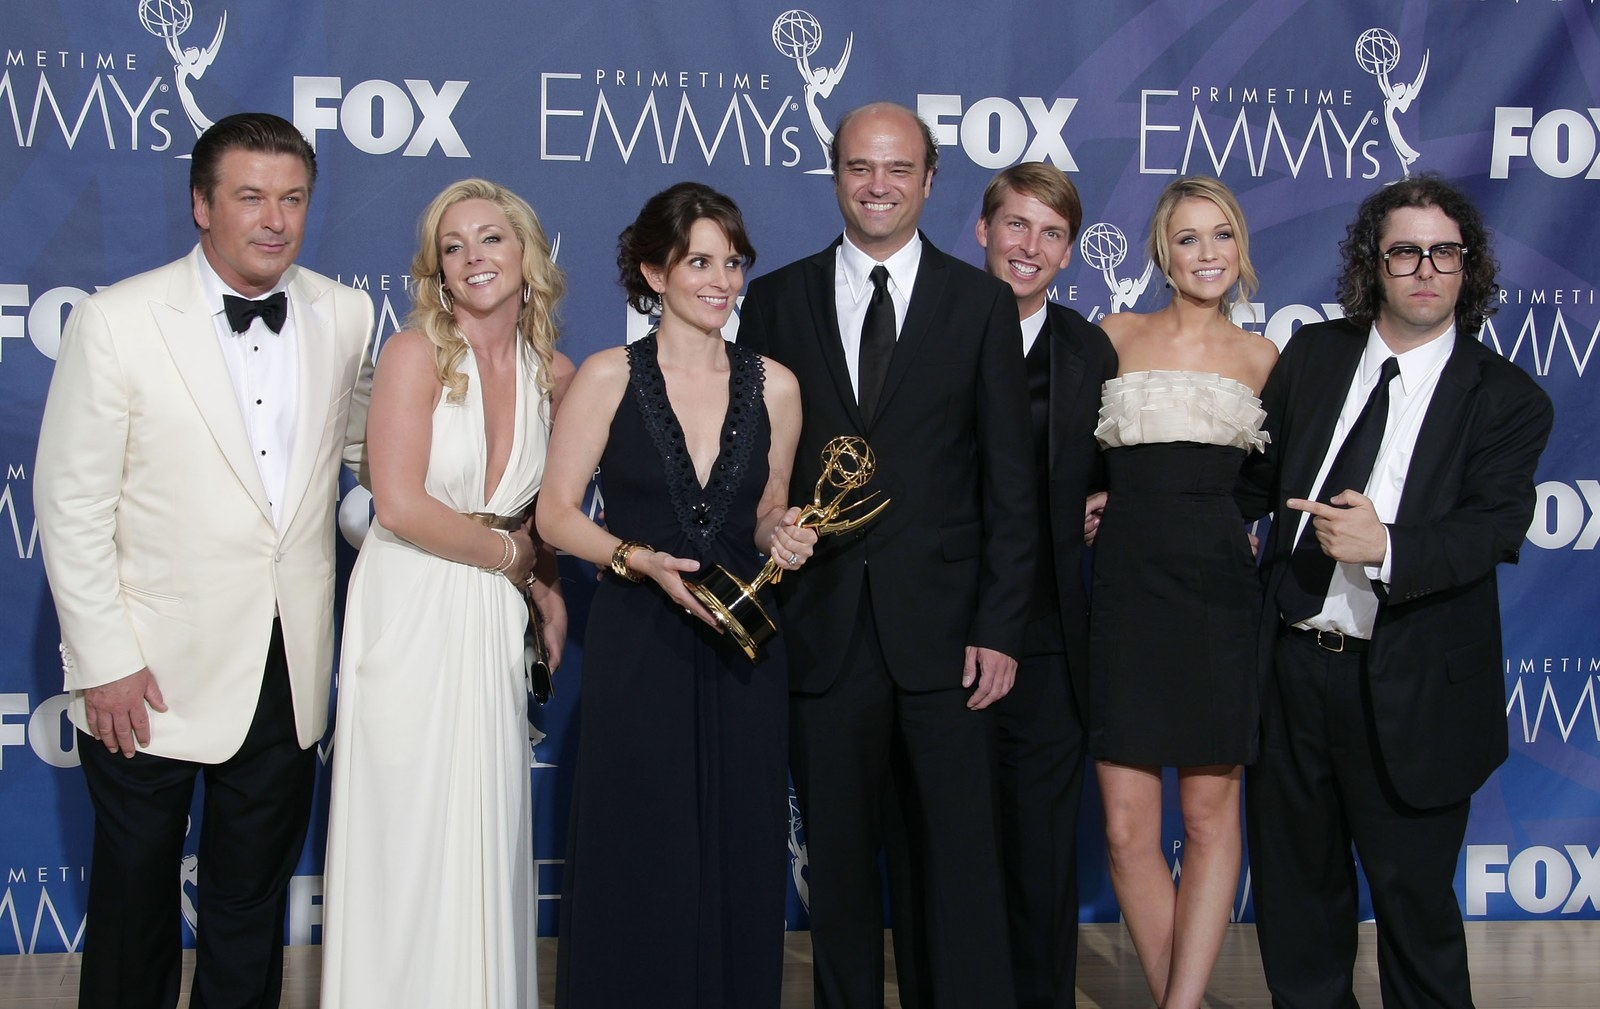 """30 Rock  was revered by the Emmys as the """"Outstanding Comedy Series"""" of 2007. -  A hilarious woman in charge of a rag-tag group of comedy writers?"""